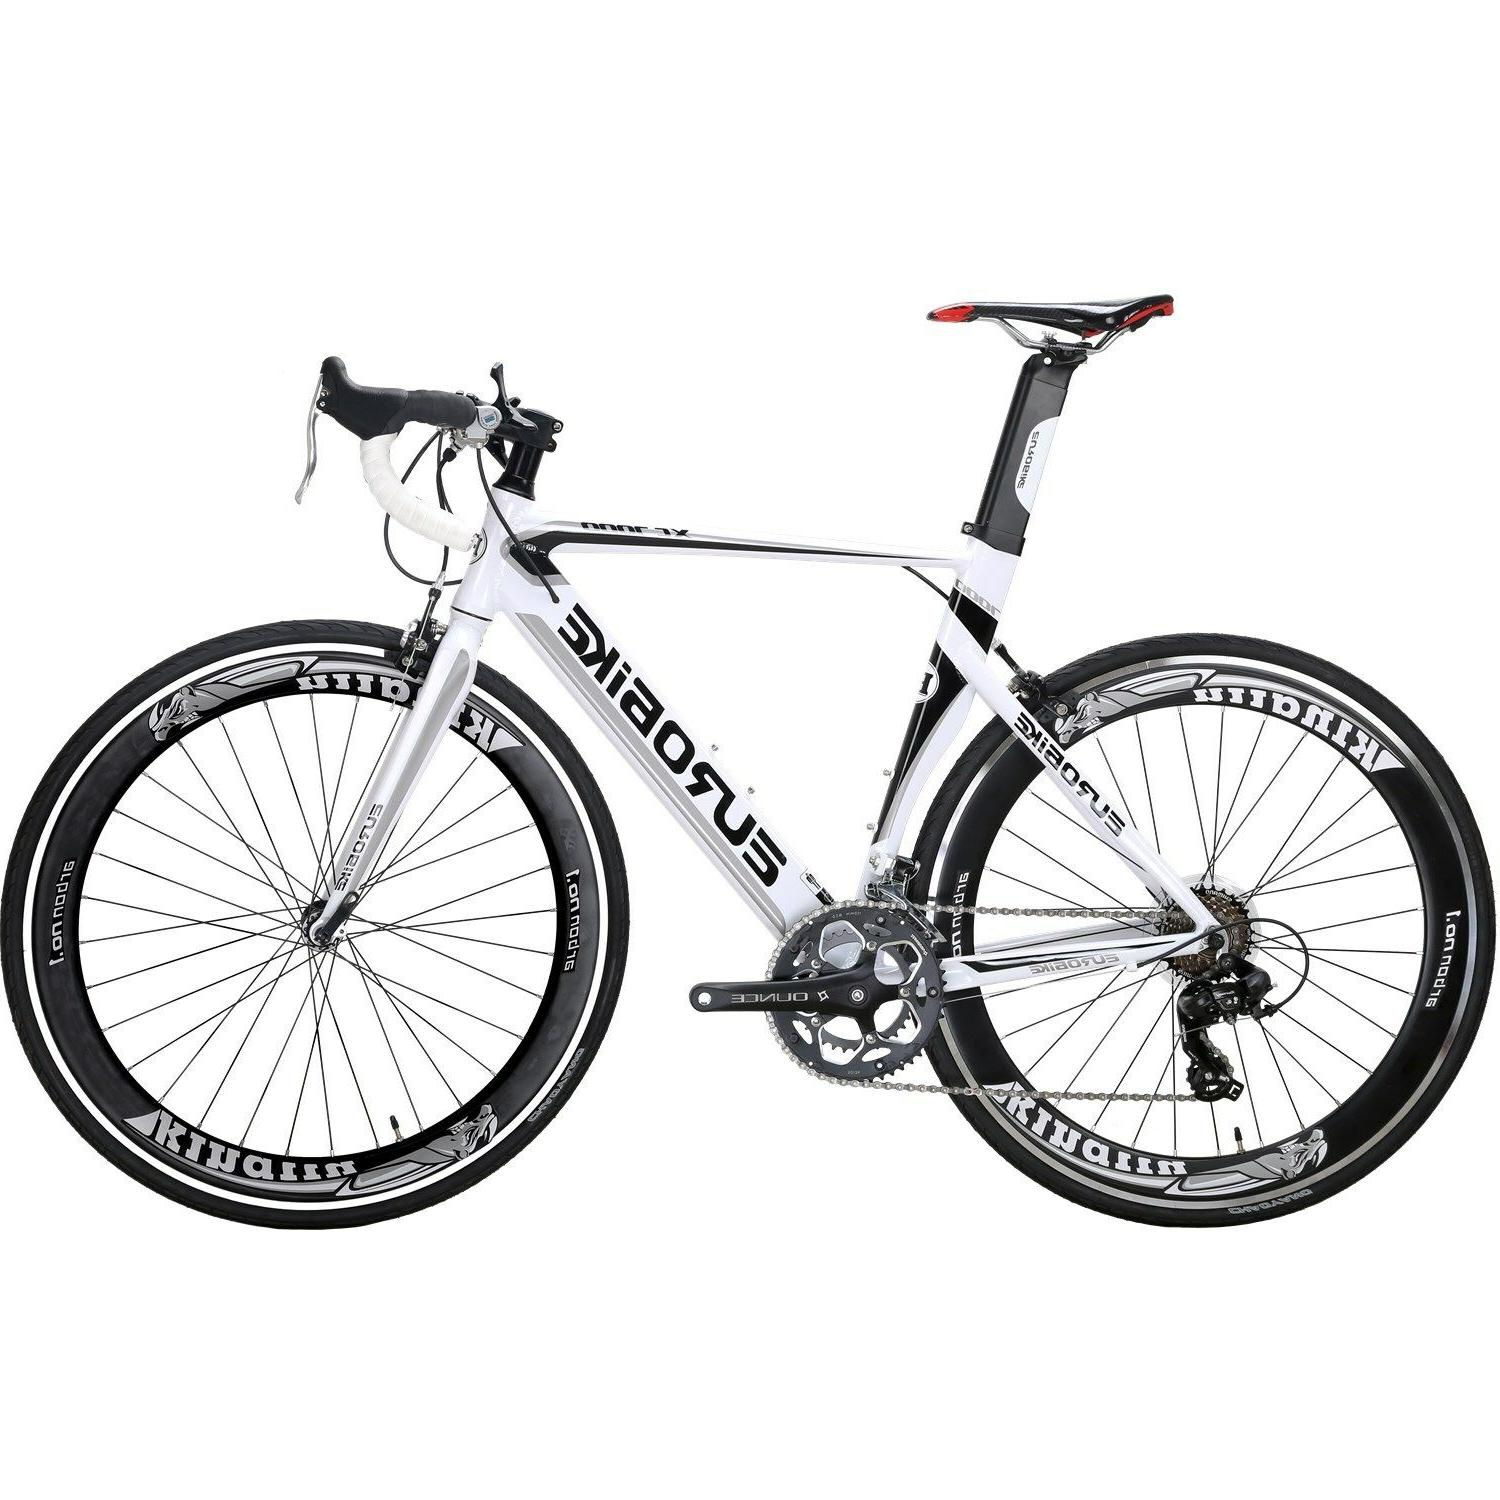 Racing Road Bike 700C Wheels Shimano 14 Speed Mens Bicycle A